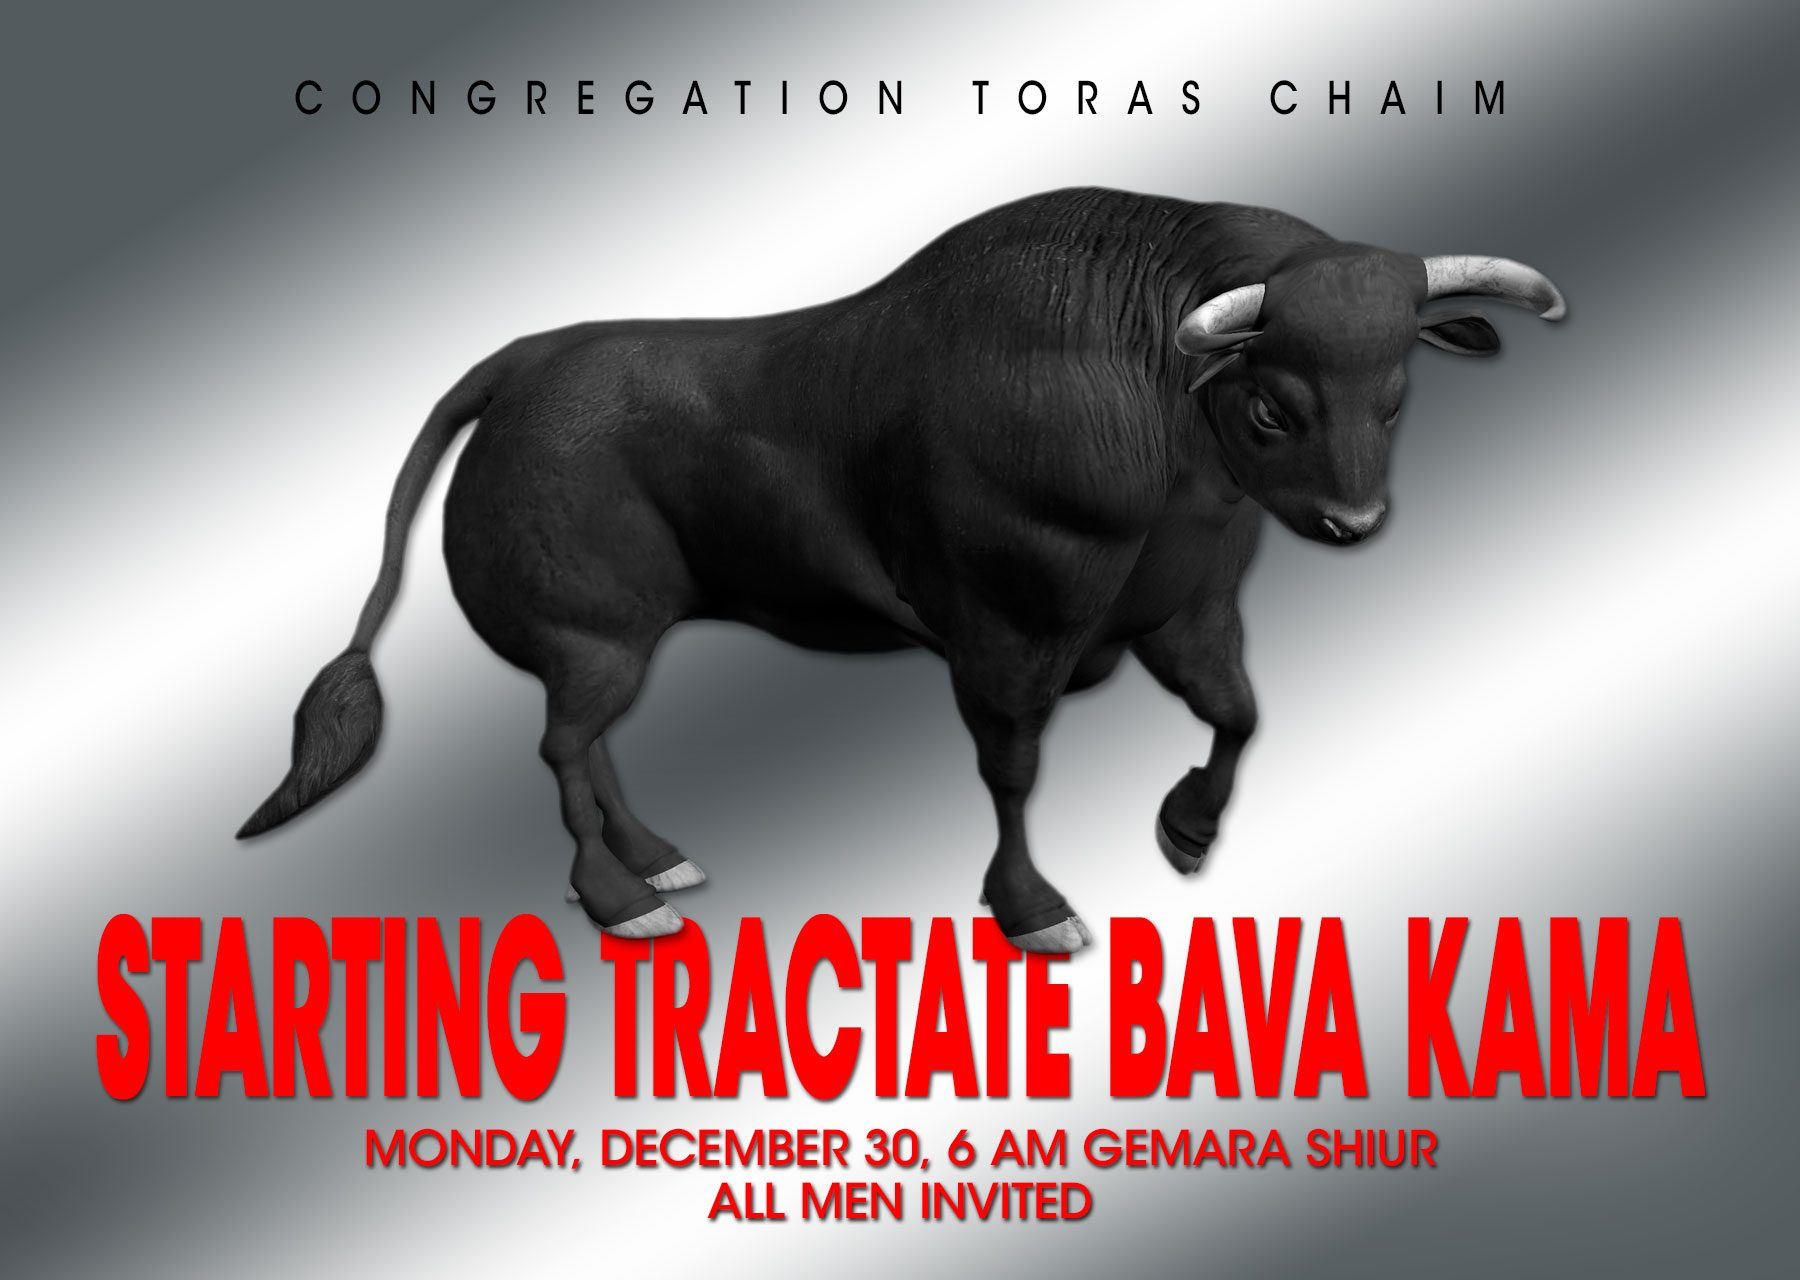 Starting Tractate Bava Kama